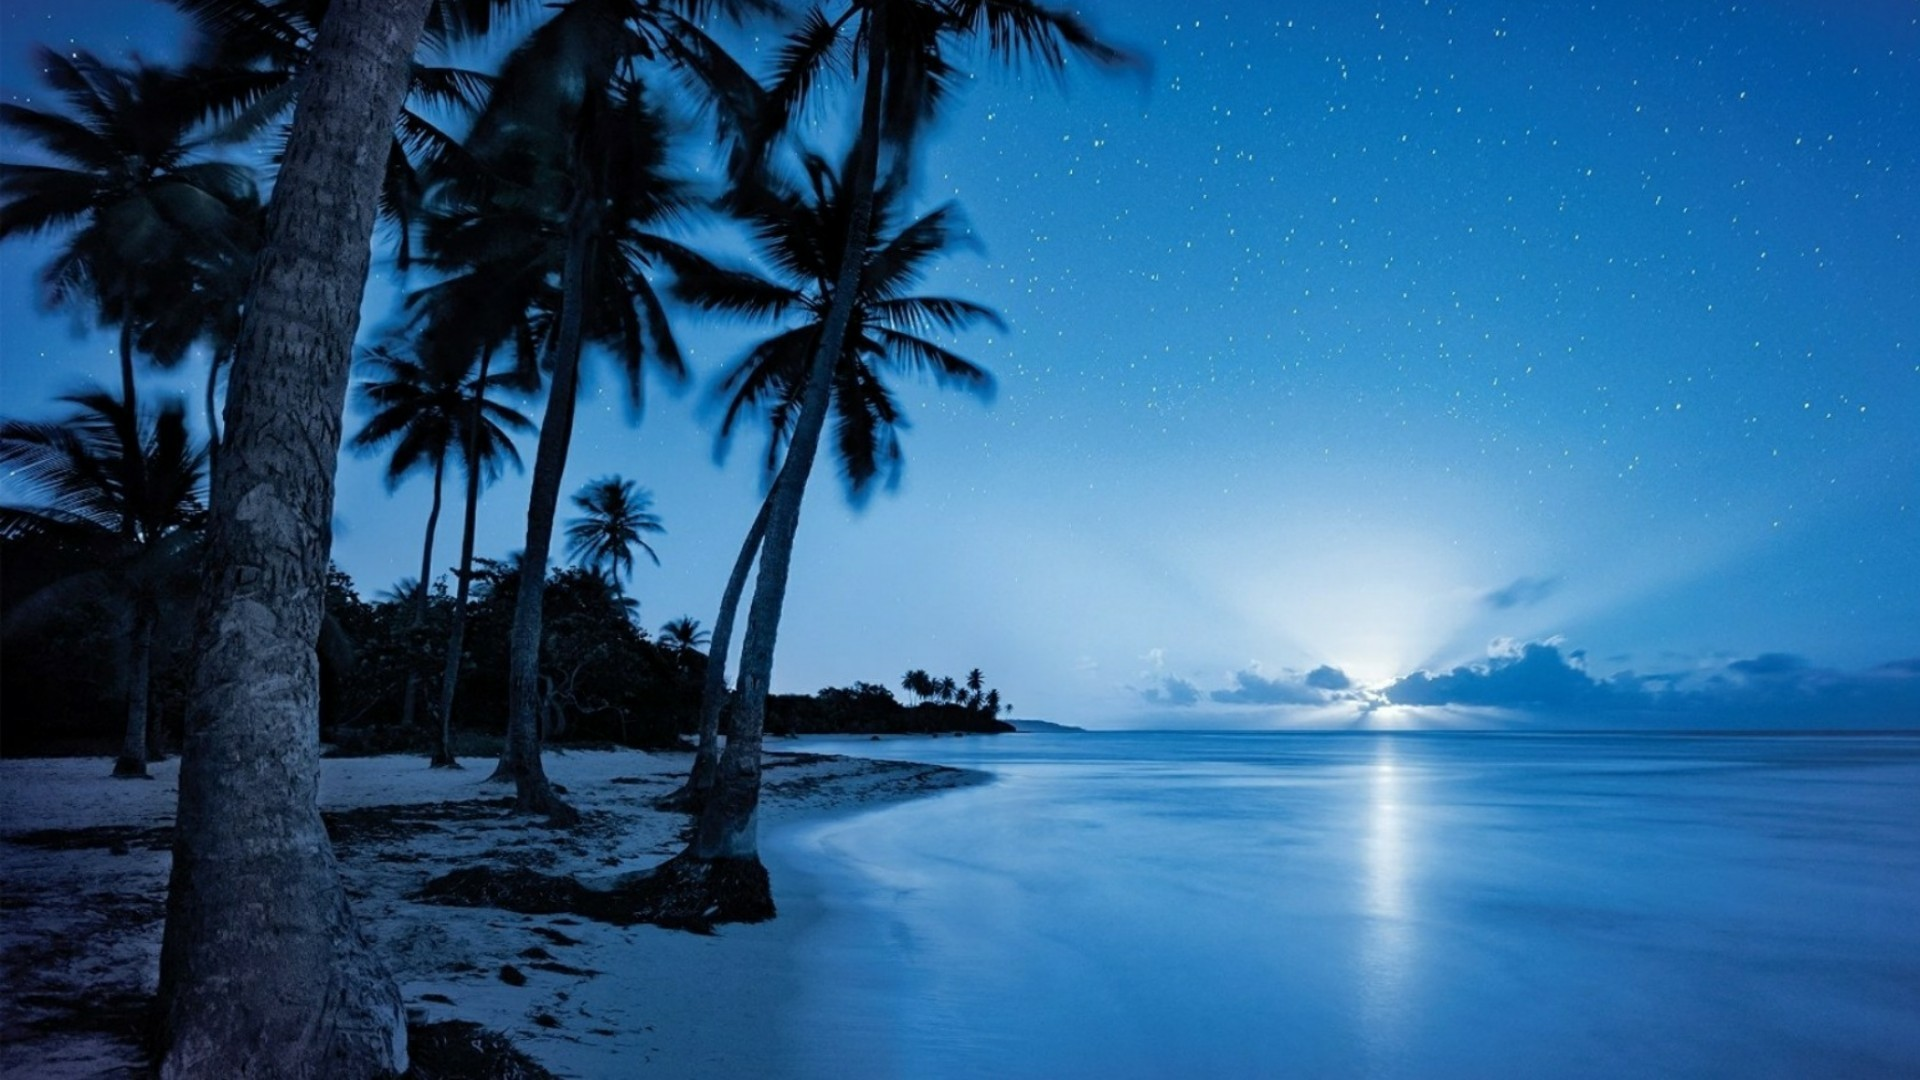 Night Beach Wallpapers 76 Pictures